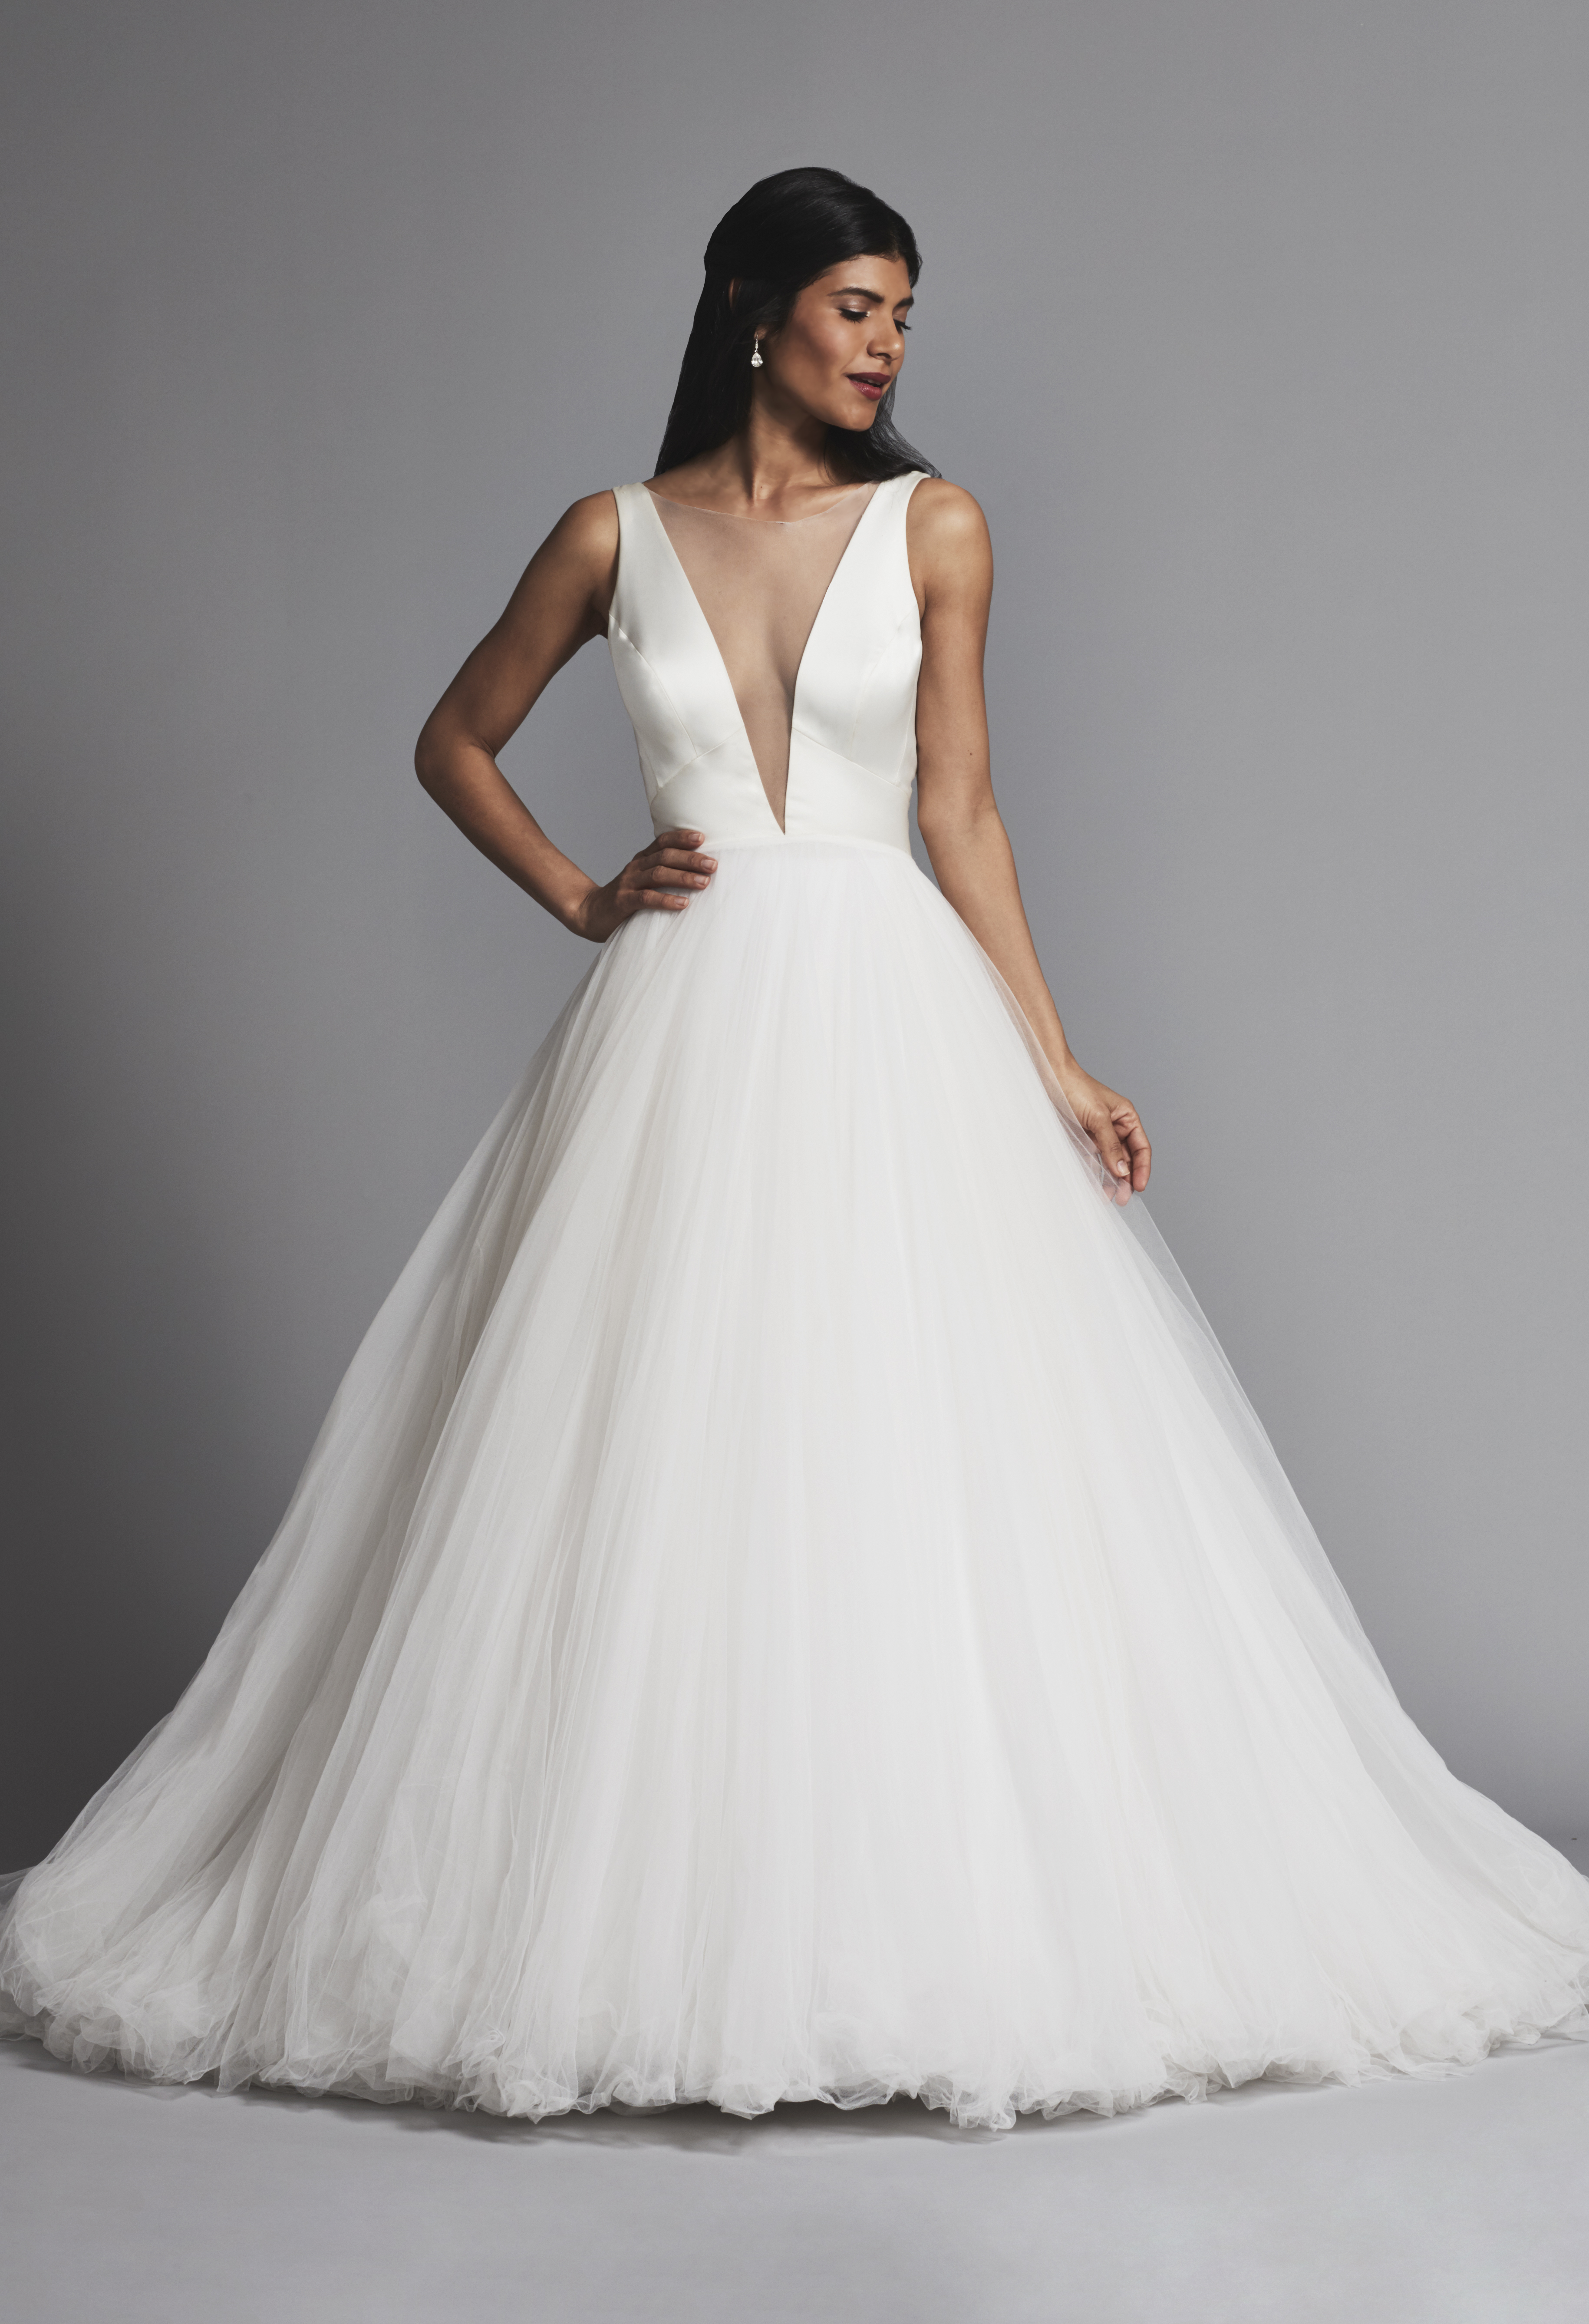 e5e7bc770bc Classic And Romantic Satin And Tulle Ball Gown Wedding Dress ...